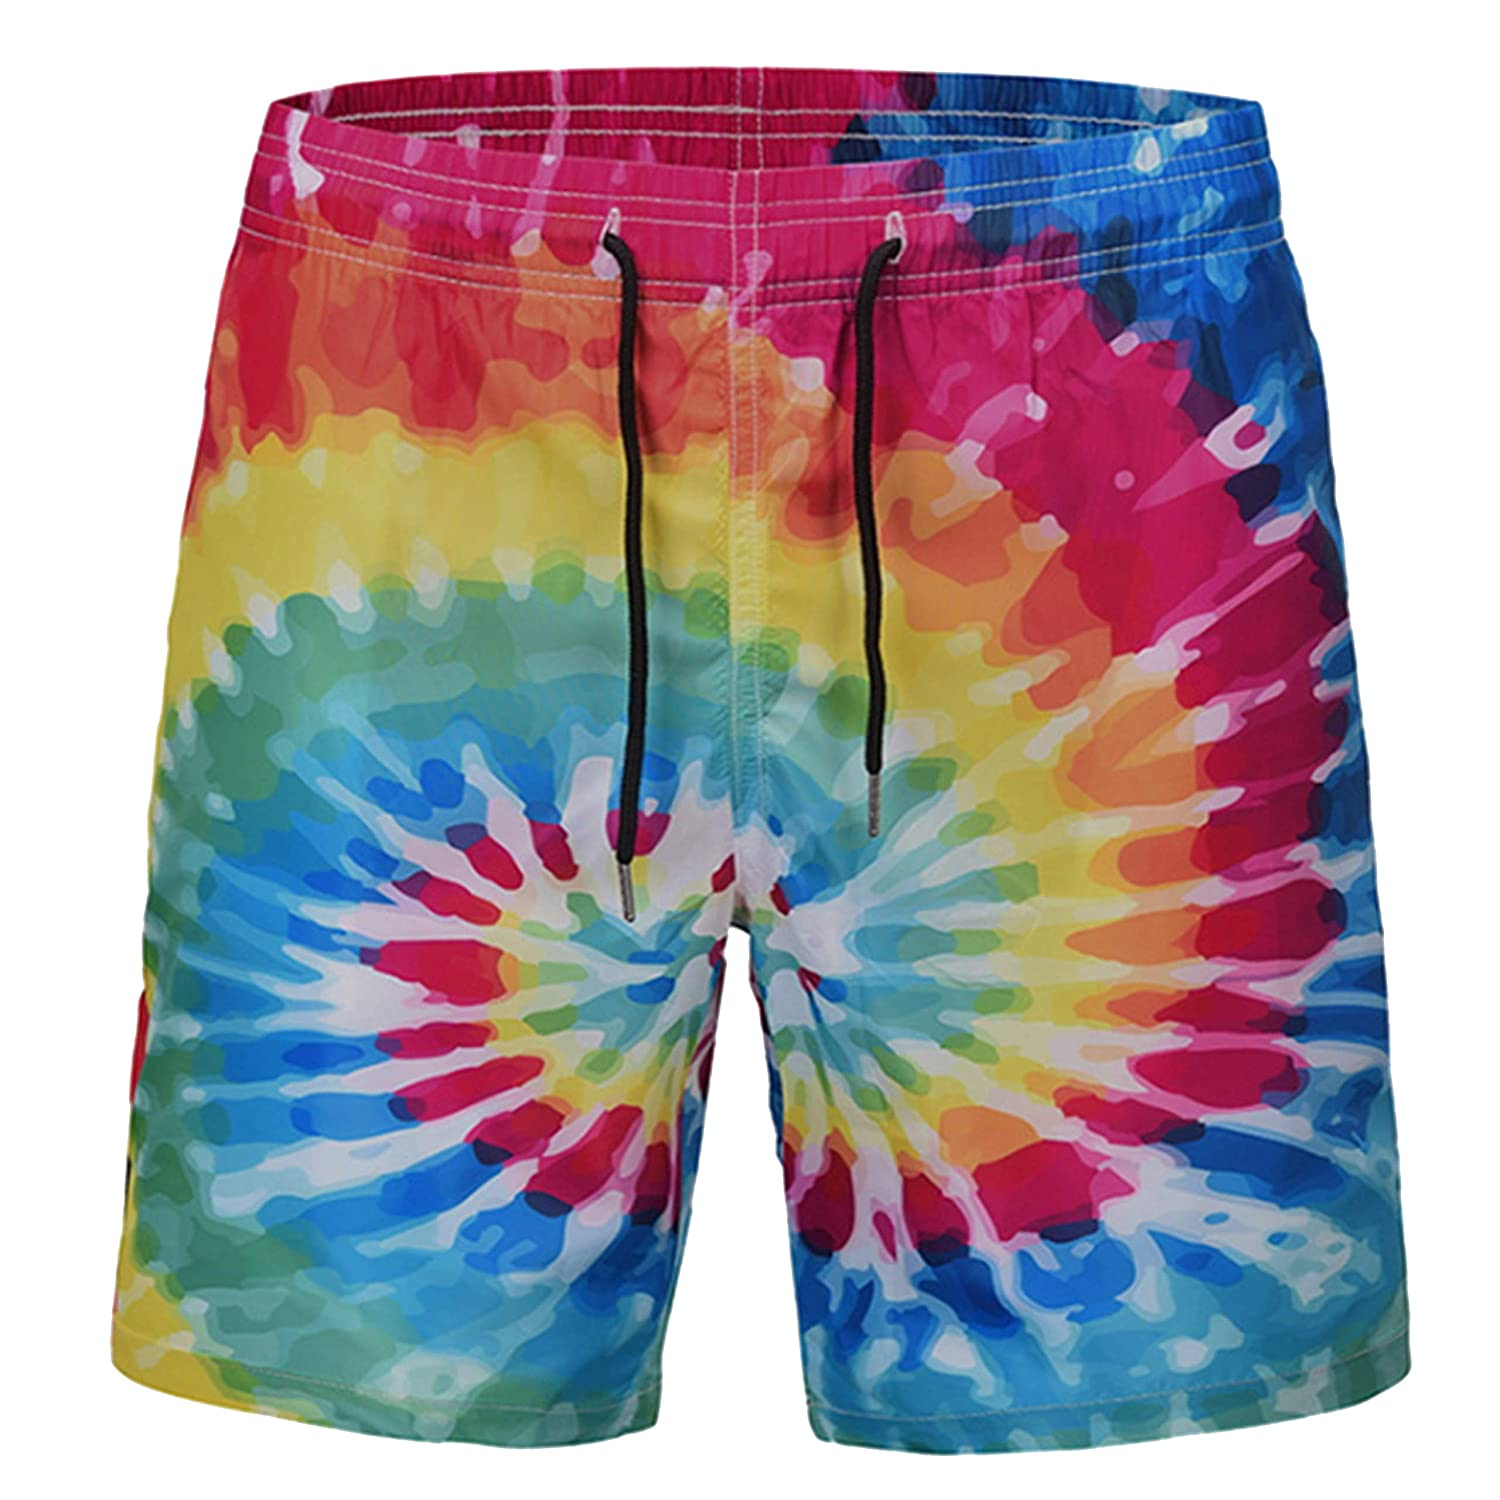 6db8873ae6 AJHFI HSAH Rainbow Tie Dye Men's Swim Trunks Quick Dry Beach Shorts |  Amazon.com